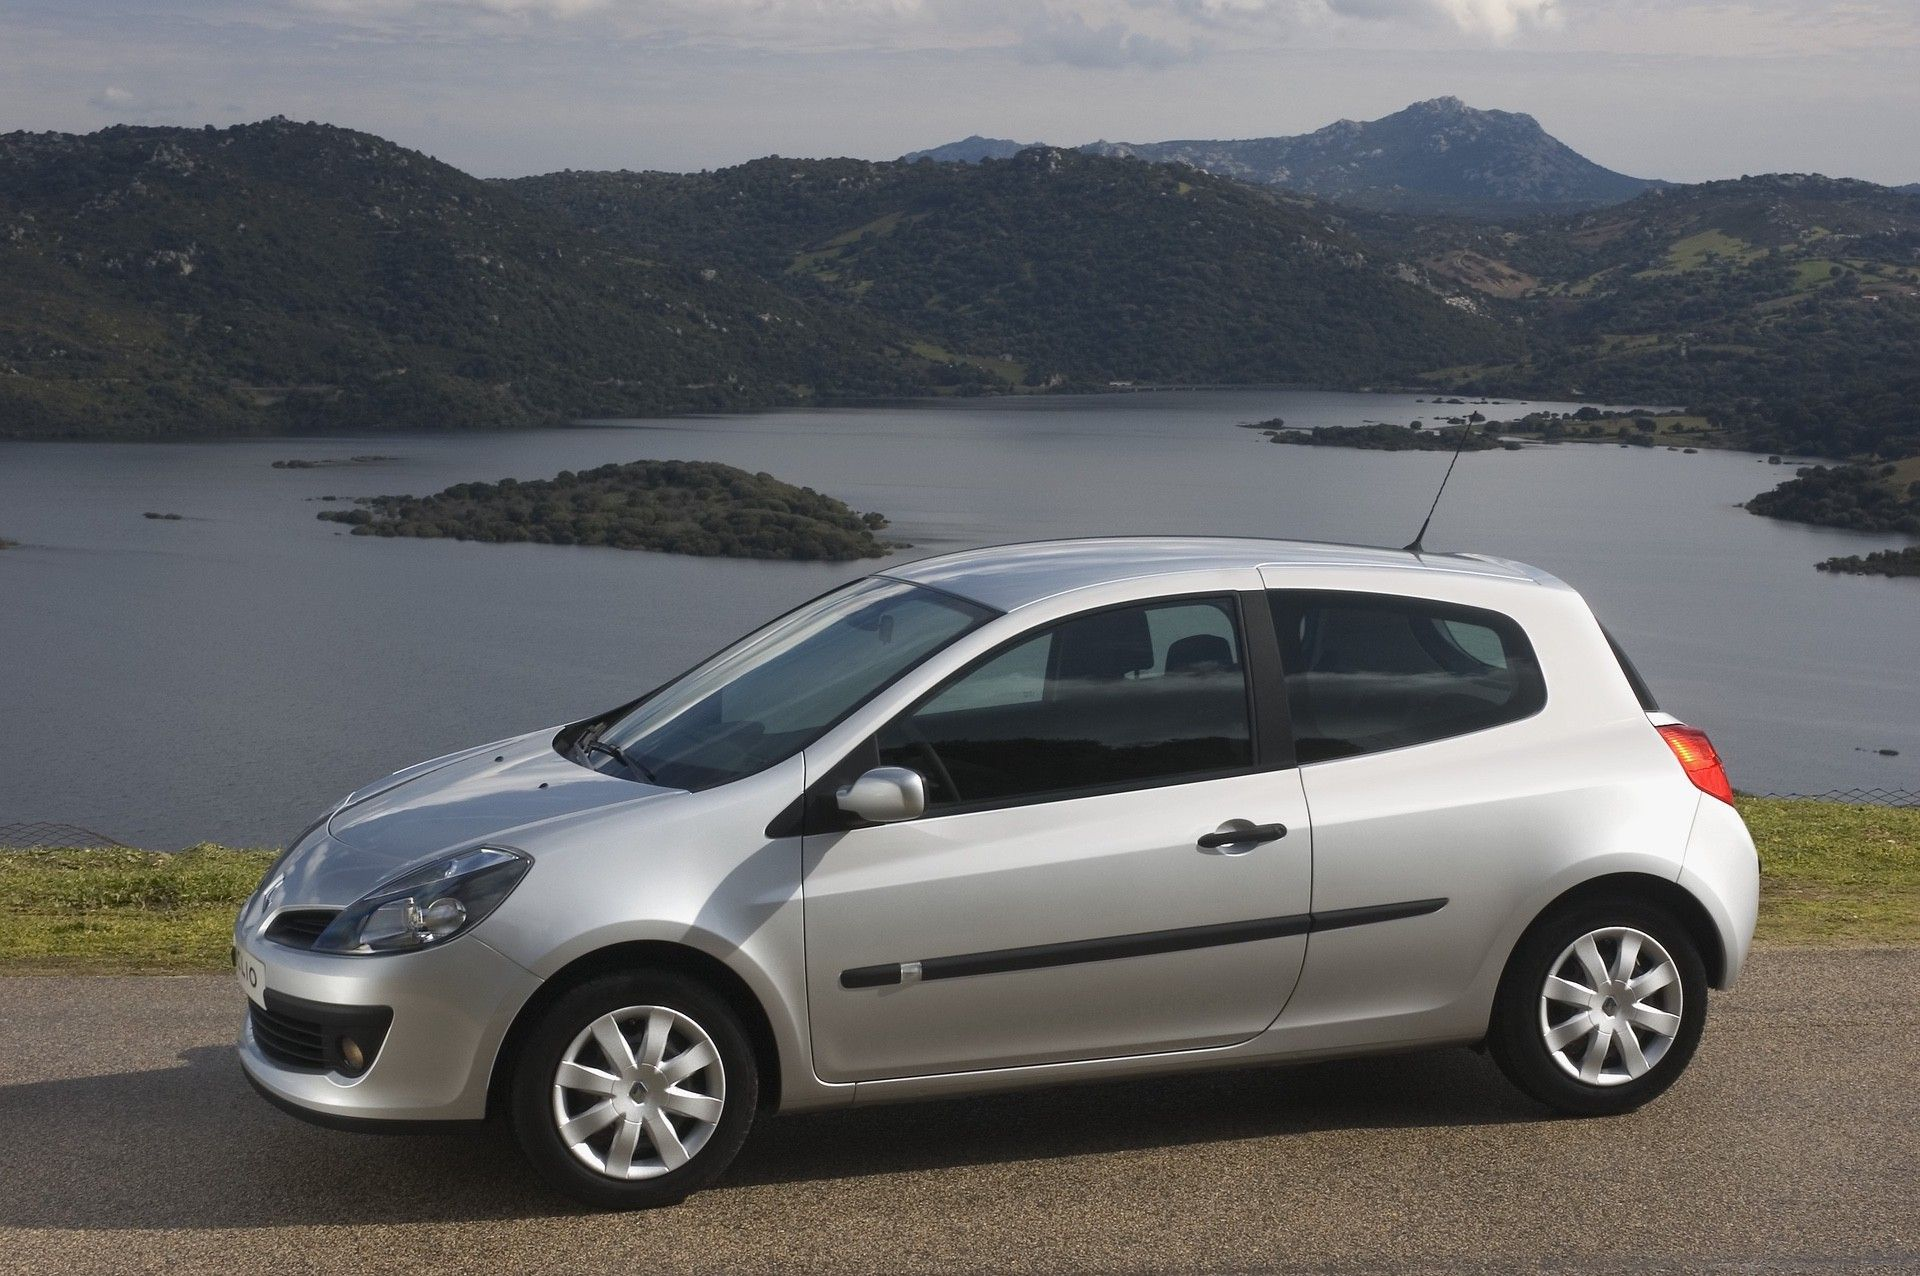 2020-30-years-of-Renault-CLIO-Renault-CLIO-III-2005-2012-5